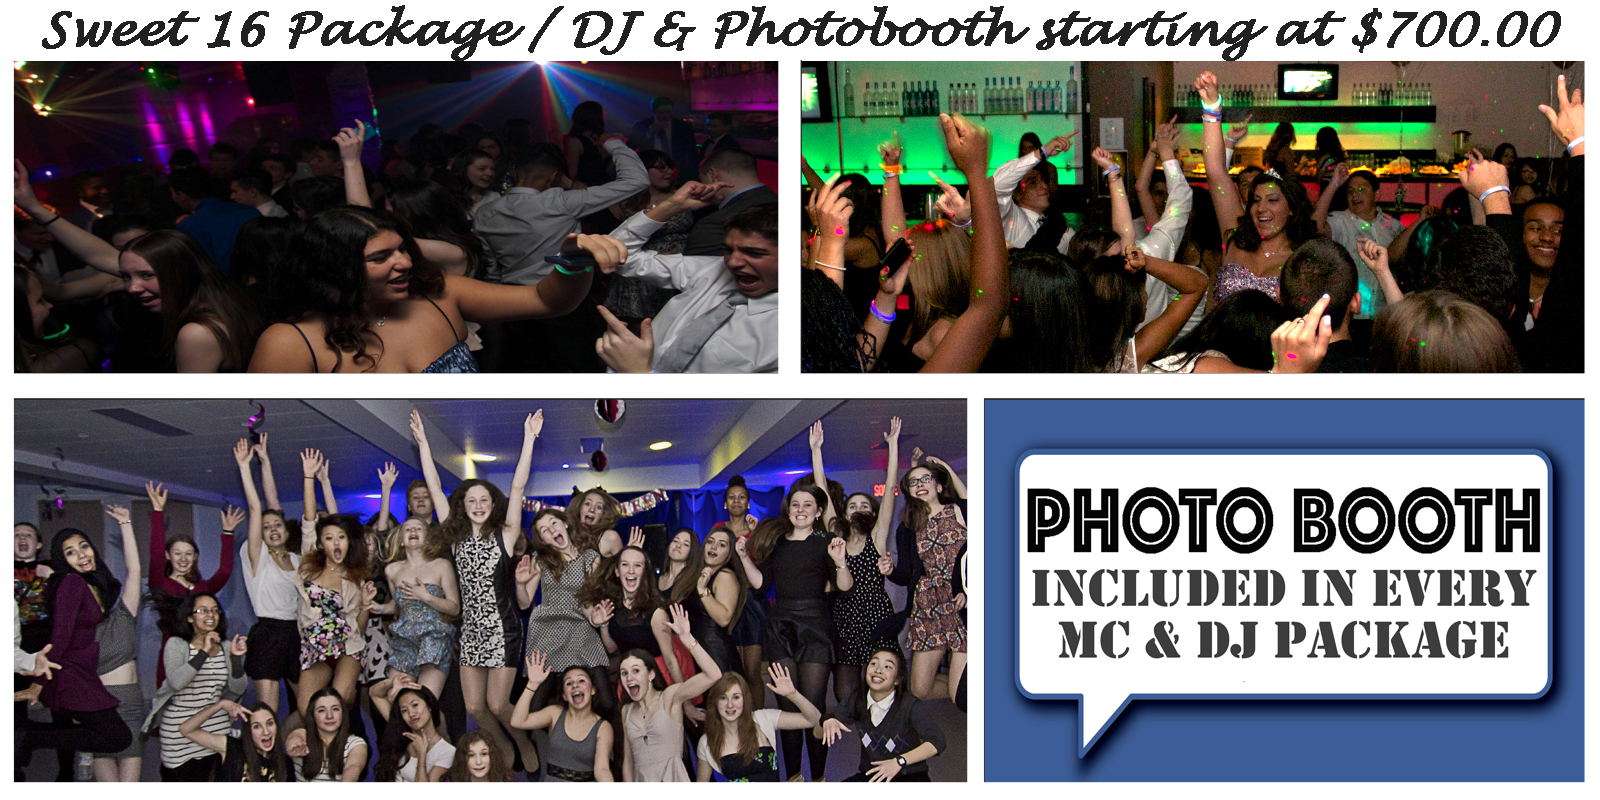 Dj Amp Photo Booth Package Available For Sweet 16 S Dj Shane Oliveira 514 475 4666 Award Winning